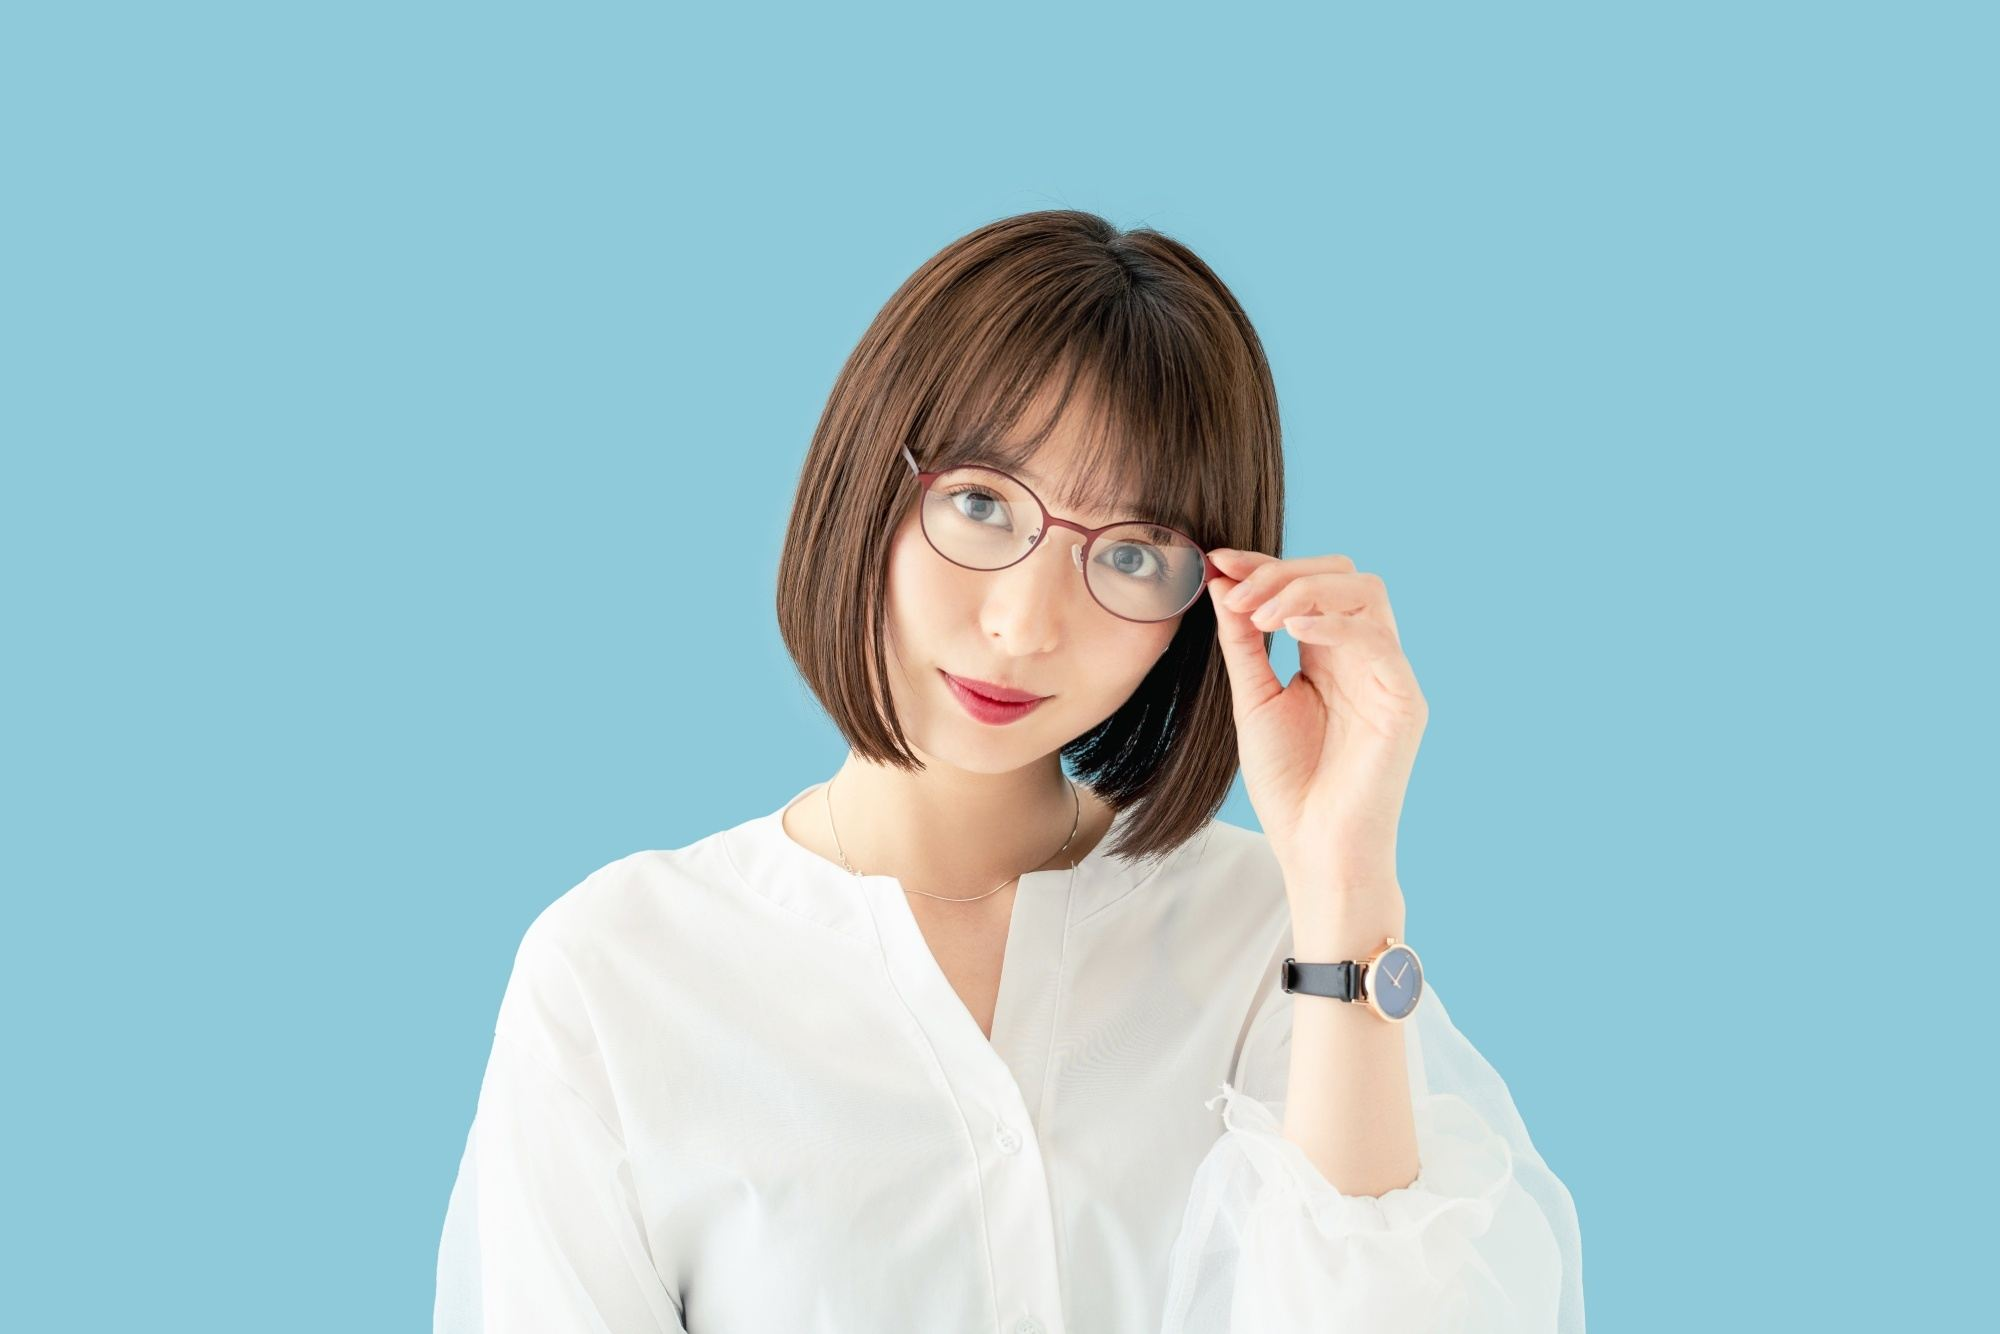 Asian woman with short dark hair with bangs wearing eyeglasses and a white blouse